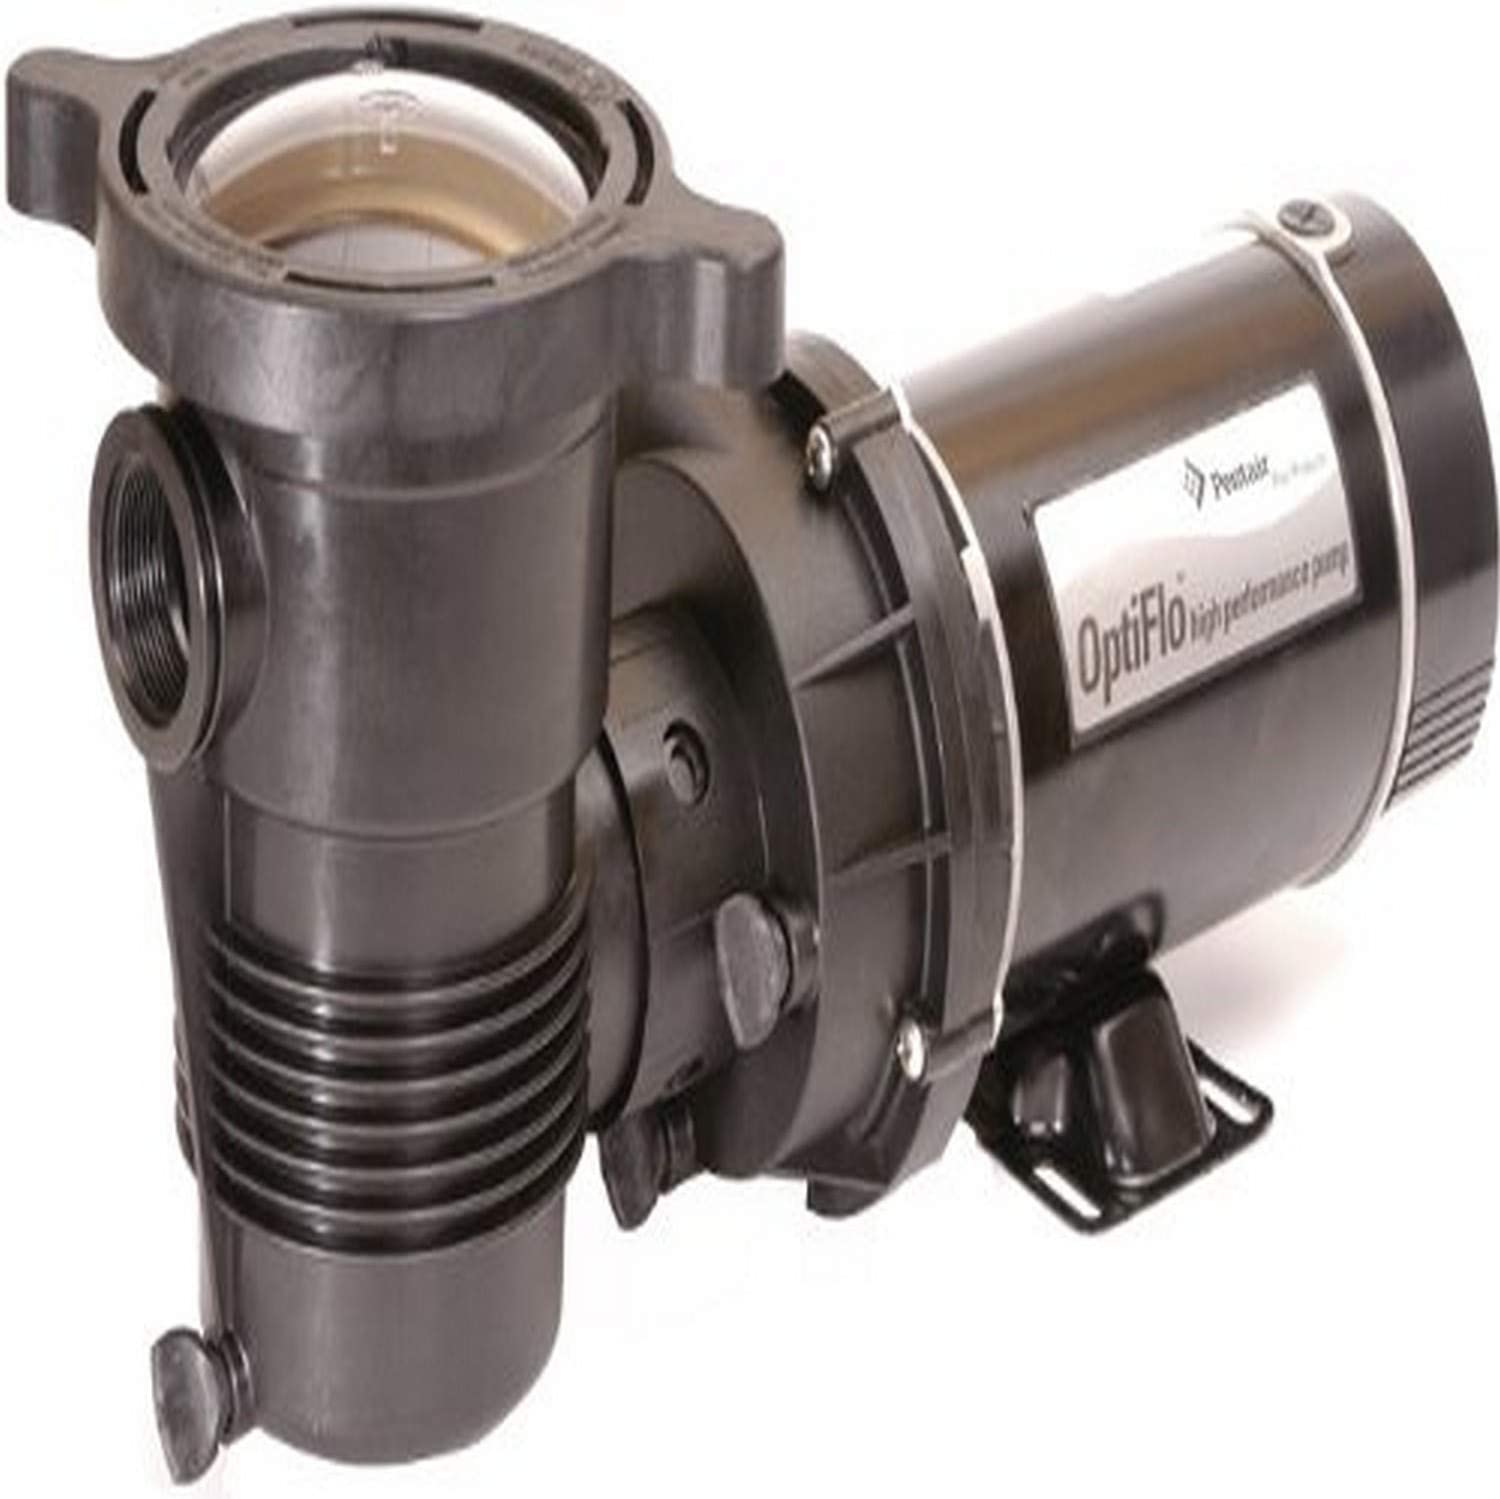 Pentair 347993 OptiFlo Horizontal Discharge Aboveground Pool Pump with CSA and 25-Feet Cord, 3/4 HP